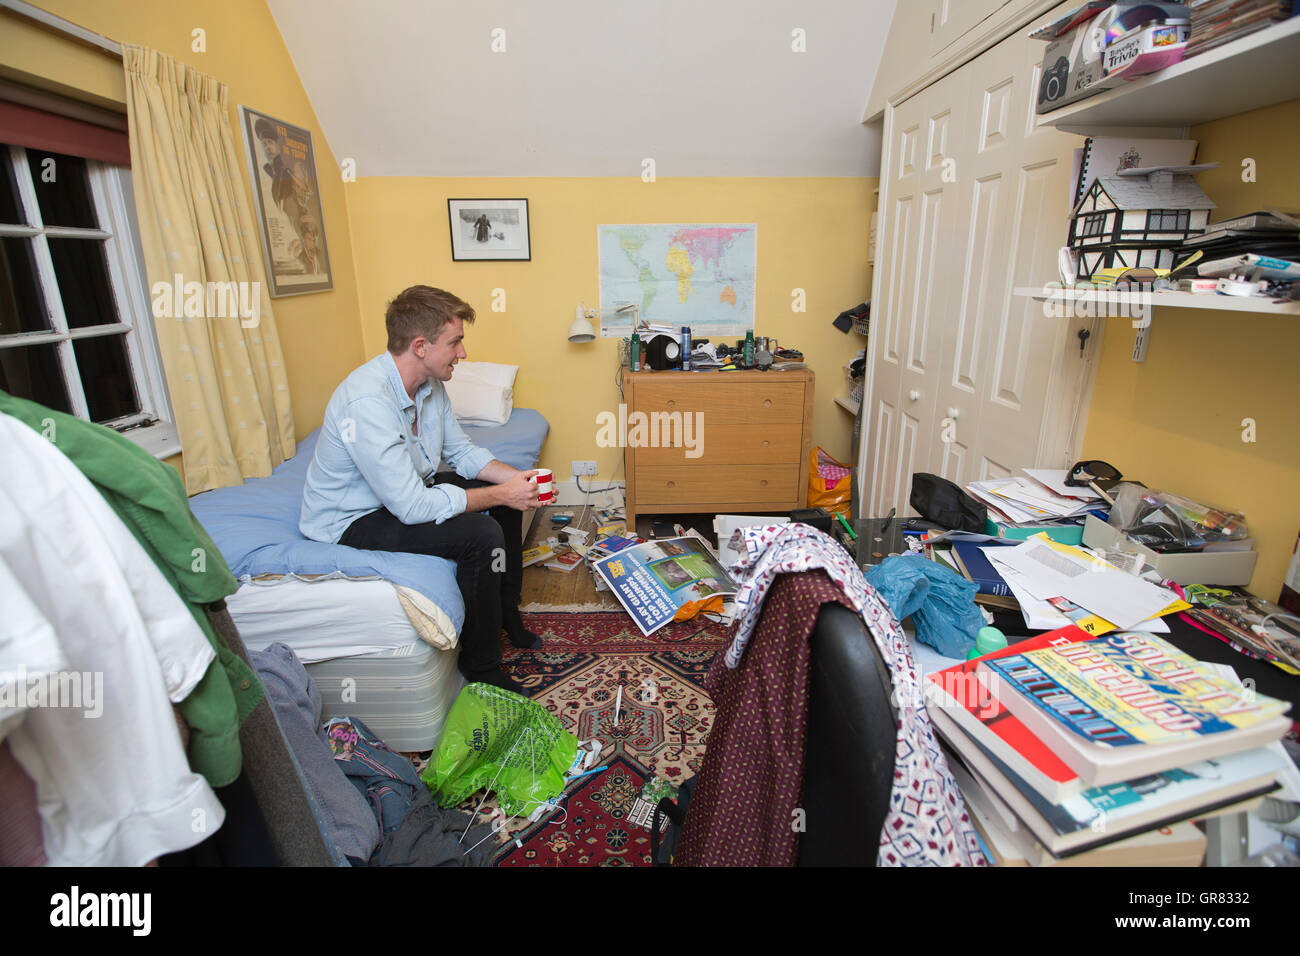 24-year-old University Graduate living back in his boyhood bedroom at parents home due to soaring house prices and - Stock Image